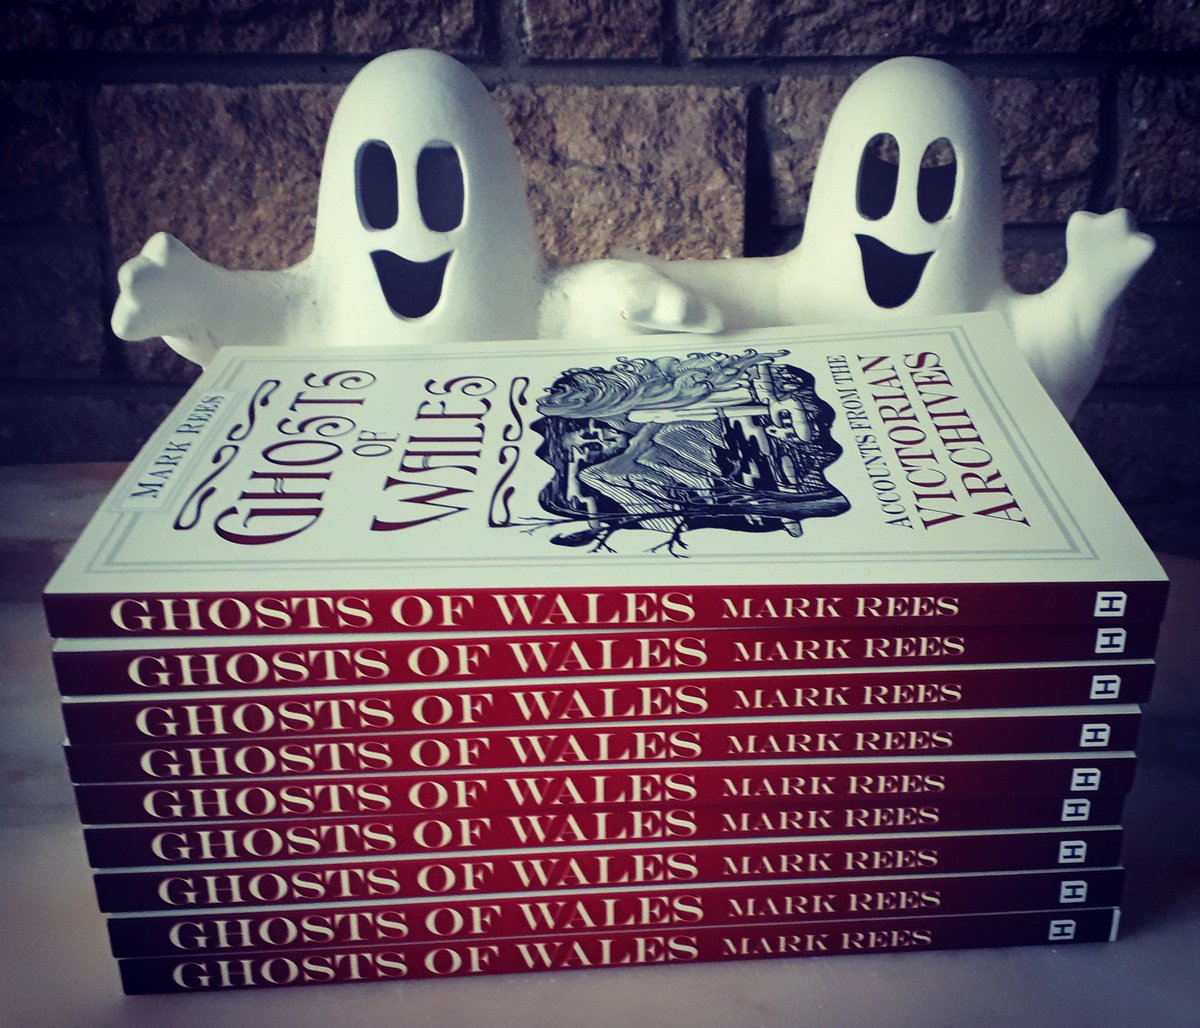 Ghosts of Wales by Mark Rees